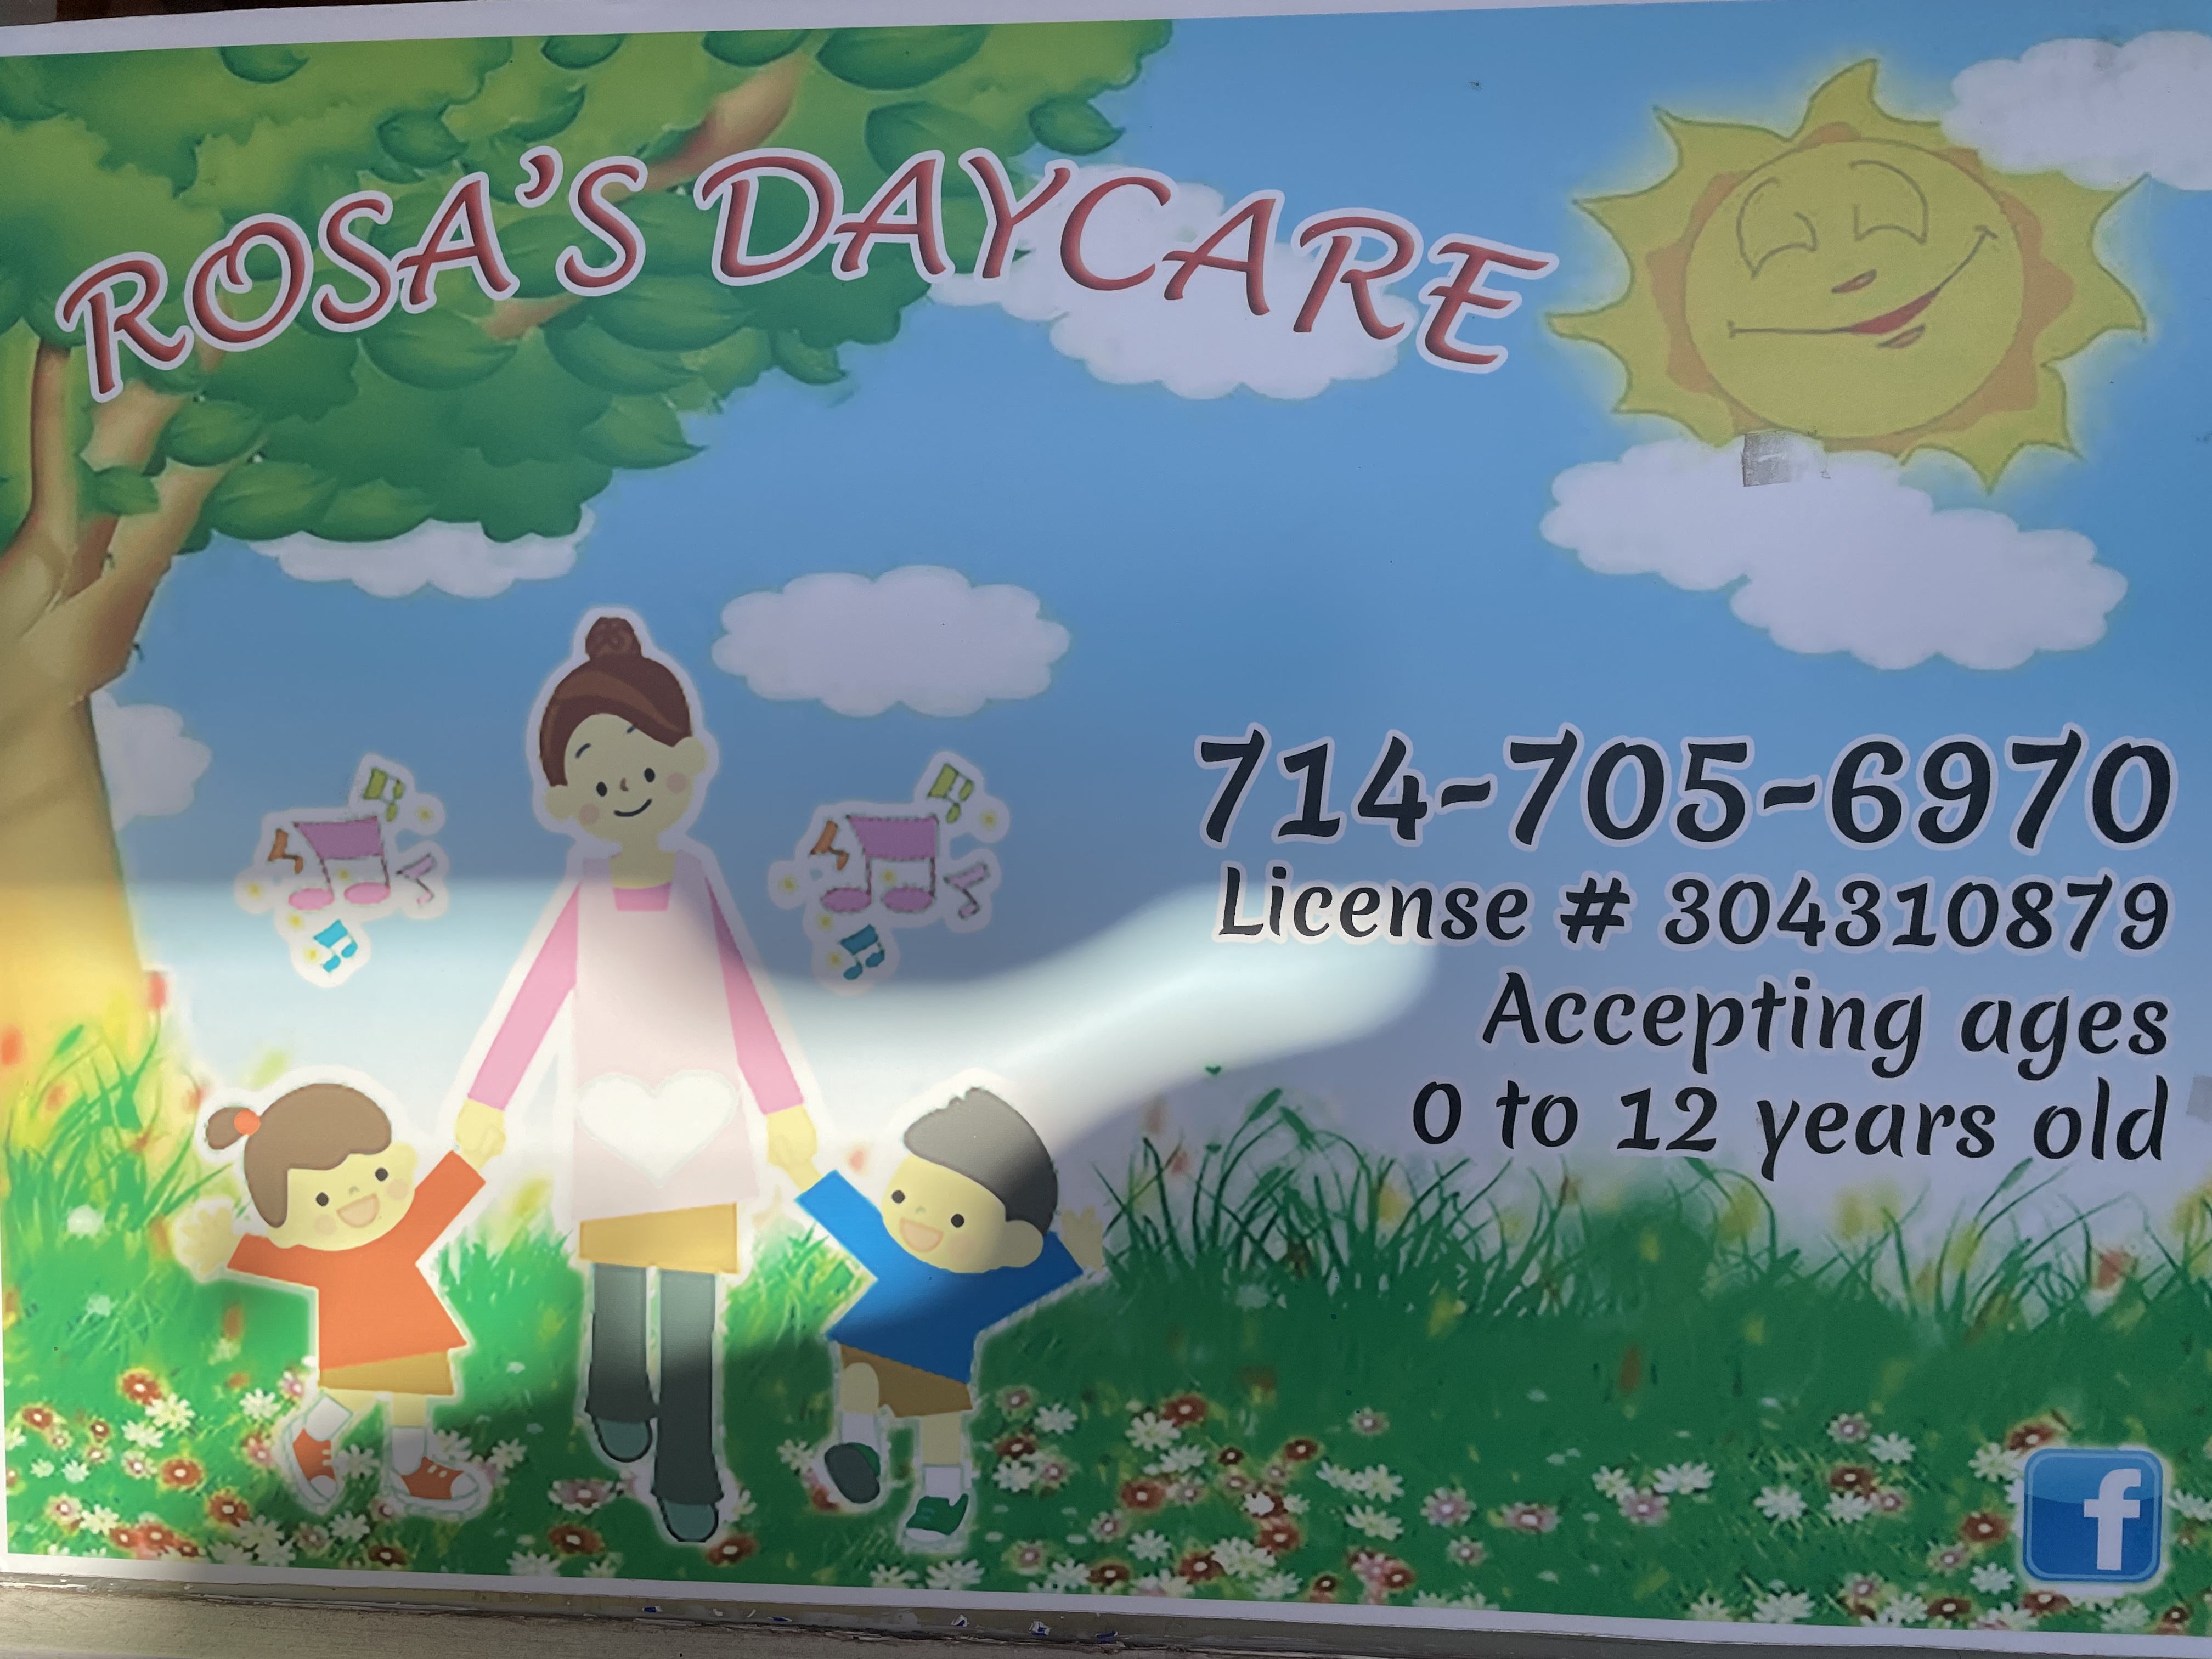 Rosa's Daycare